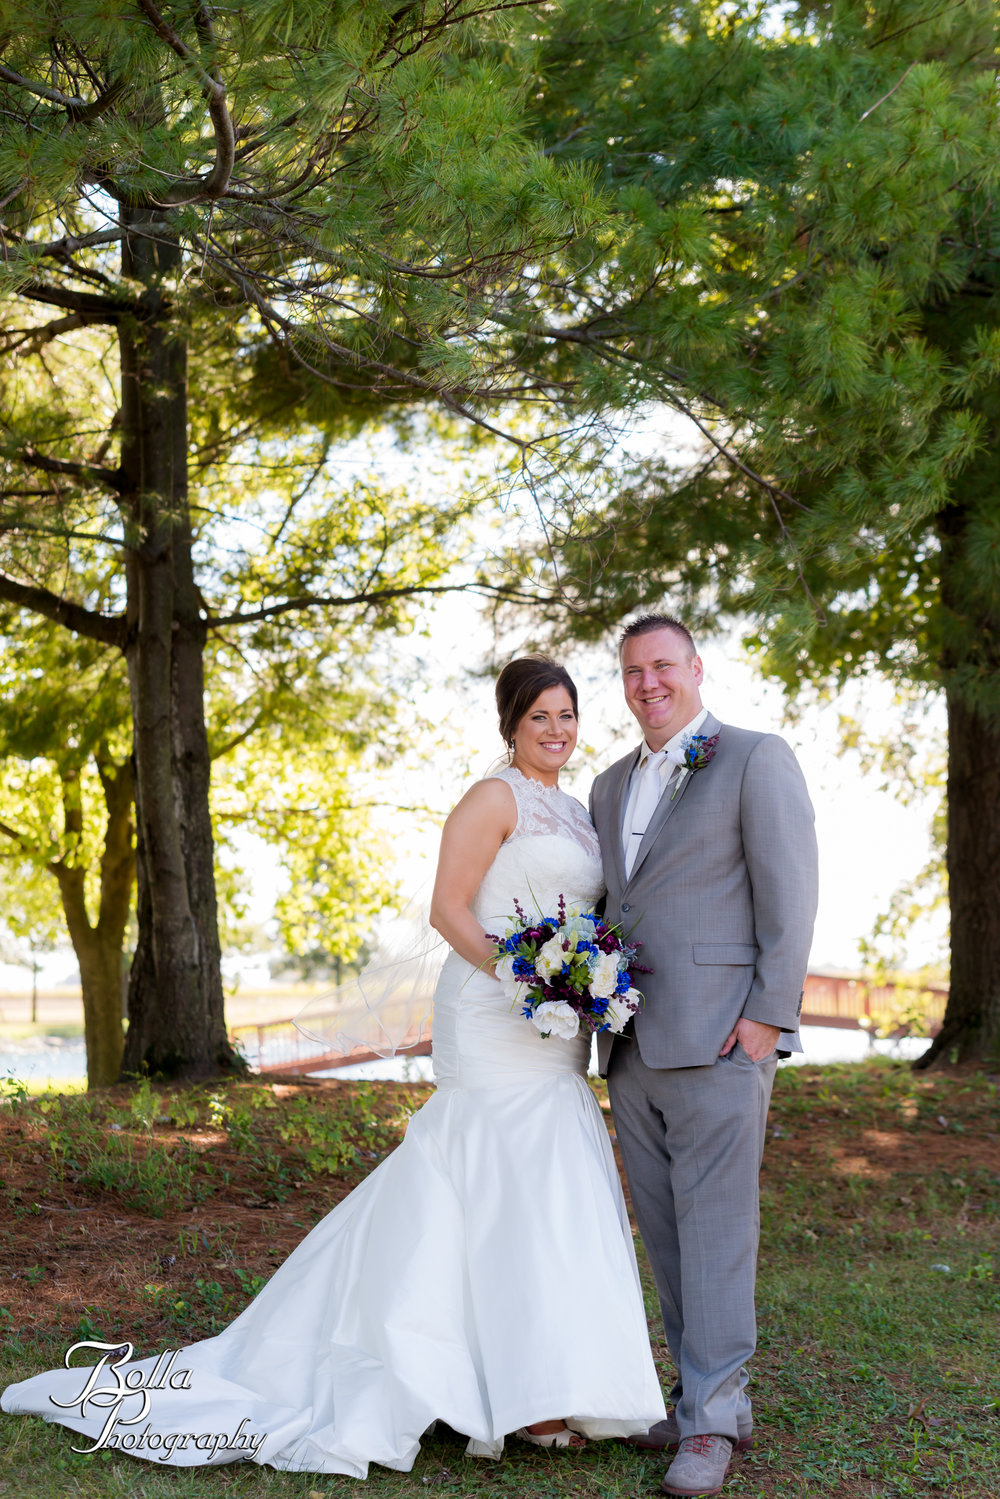 Bolla_photography_edwardsville_wedding_photographer_st_louis_weddings_Heinzmann-0001.jpg